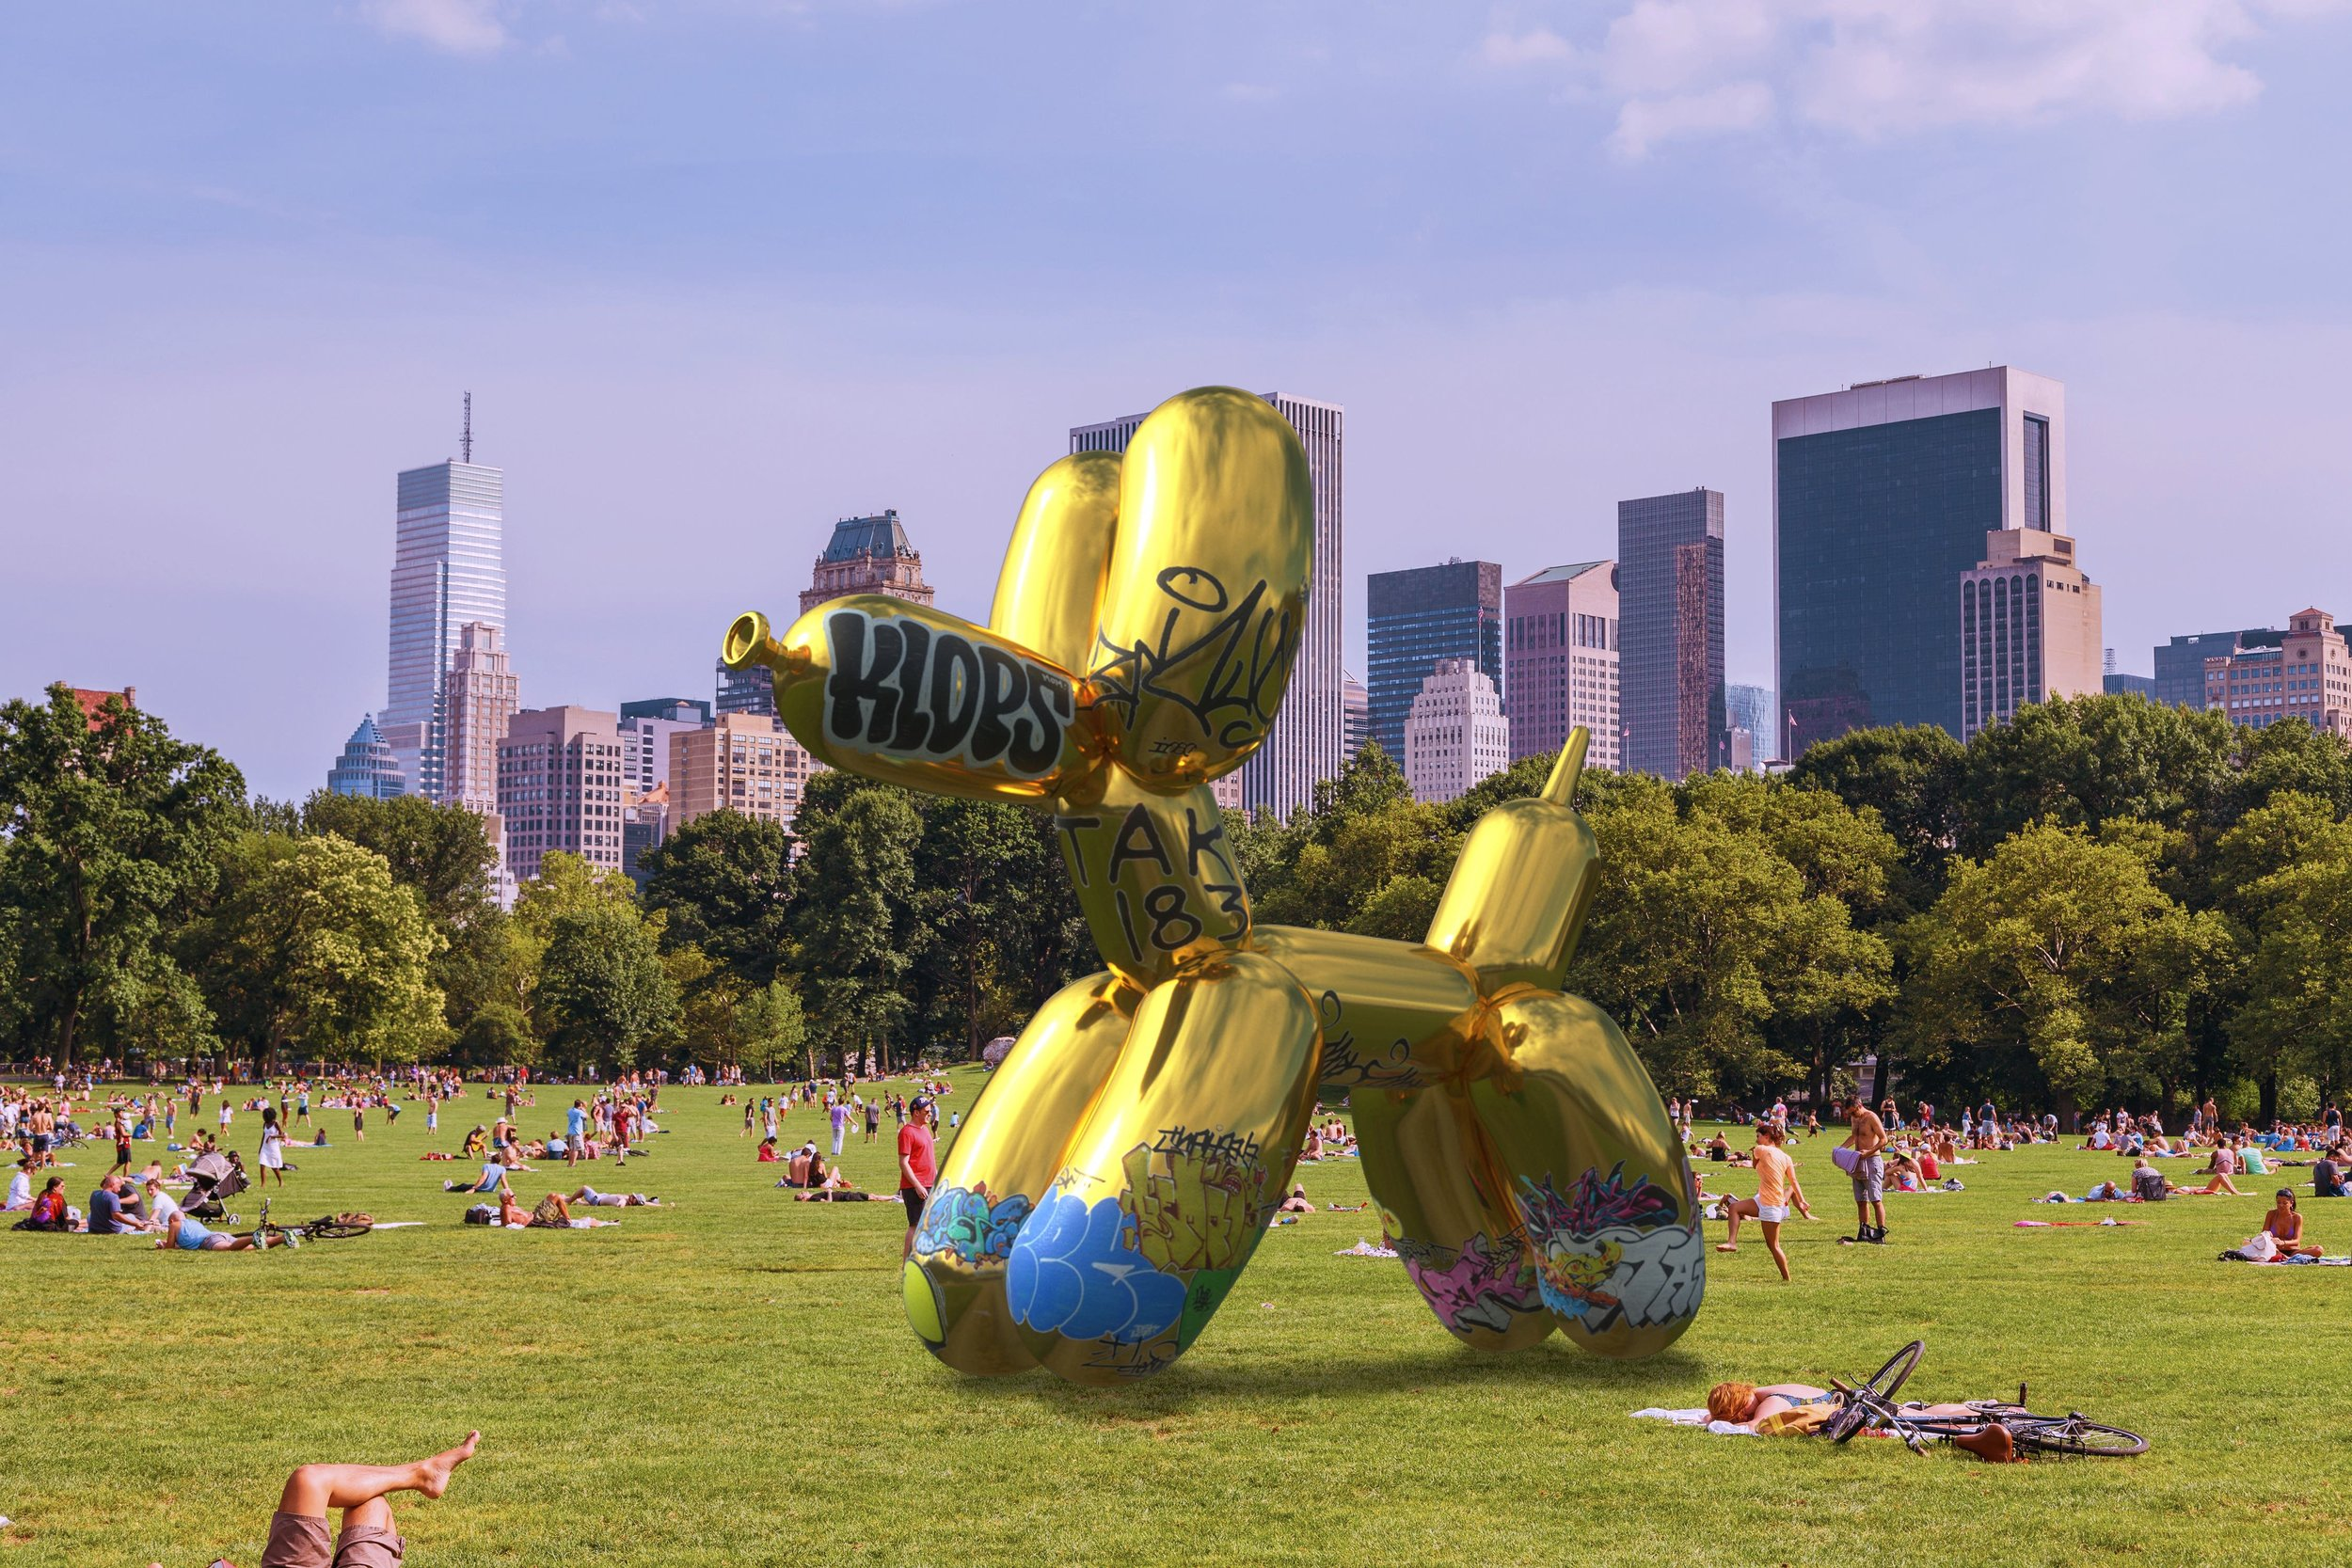 2017     Snapchat X Jeff Koons augmented reality artwork was vandalized on opening night by artist Sebastian Errazuriz.  Snapchat's new AR sculpture was launched with great fanfare in New York's Central Park on Tuesday. Visitors gathered to see the giant Balloon Dog sculpture appear in their cameras, as if it were actually there. The virtual art installation constituted the first of a series of digital, 3D, geo-tagged sculptures that will populate the world.  On site was also present artist Sebastian Errazuriz and his team from CrossLab, who observed the corporate initiative. 24 hours later they completed an identical 3D AR Balloon Dog and geo-tagged it to the exact coordinates for visitors to see. The only difference was that the new sculpture now appeared vandalized with graffiti, as if the result of an overnight protest. A symbolic stance against an imminent AR corporate invasion.